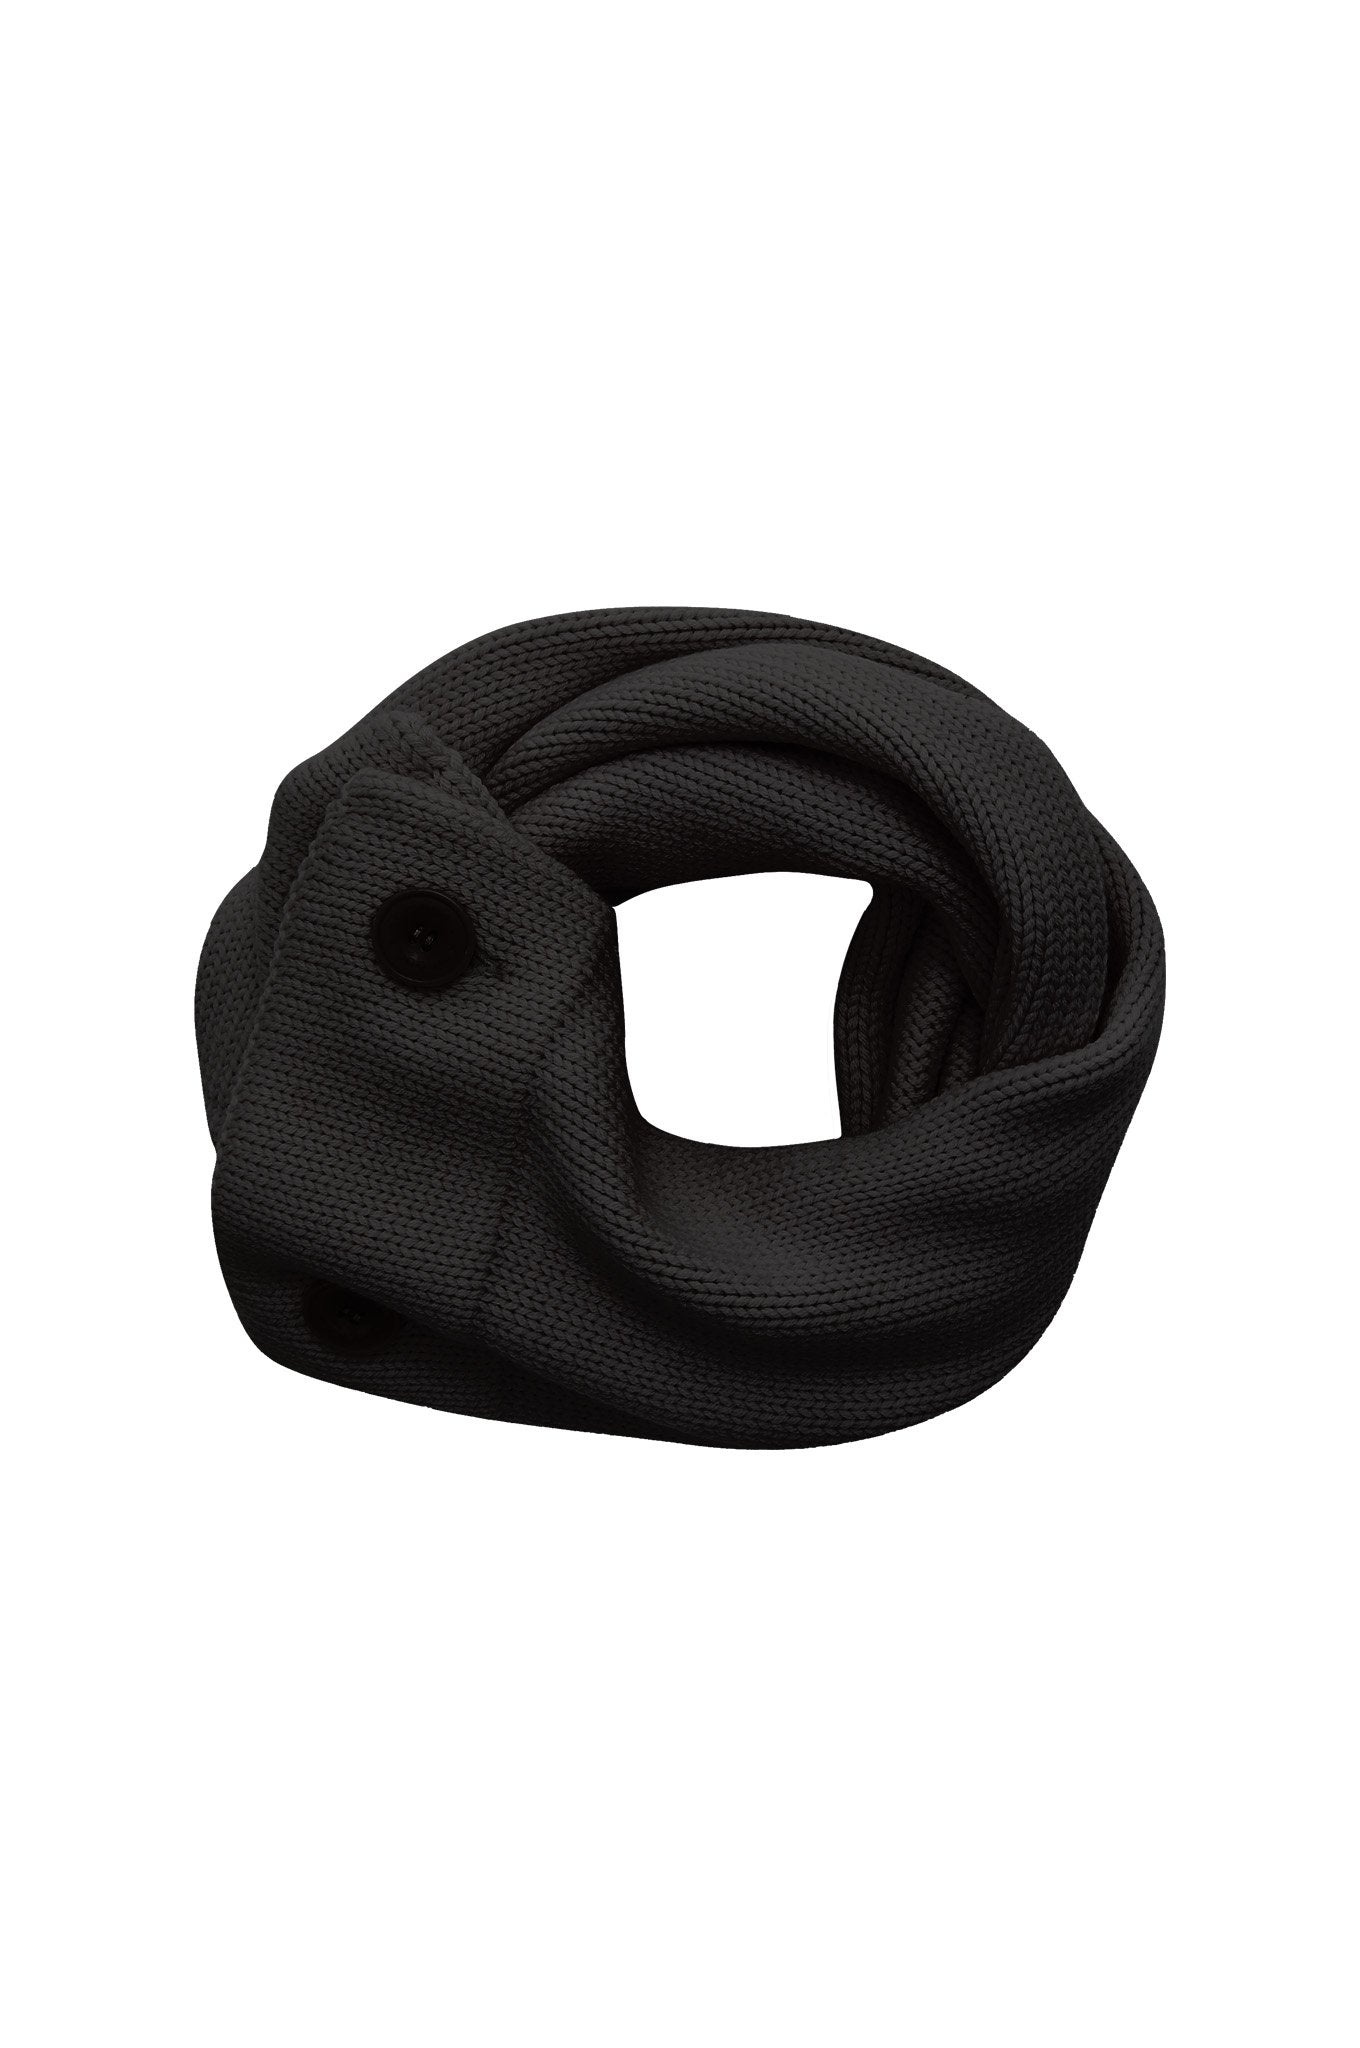 Accessories - ELI Merino Wool Snood Black